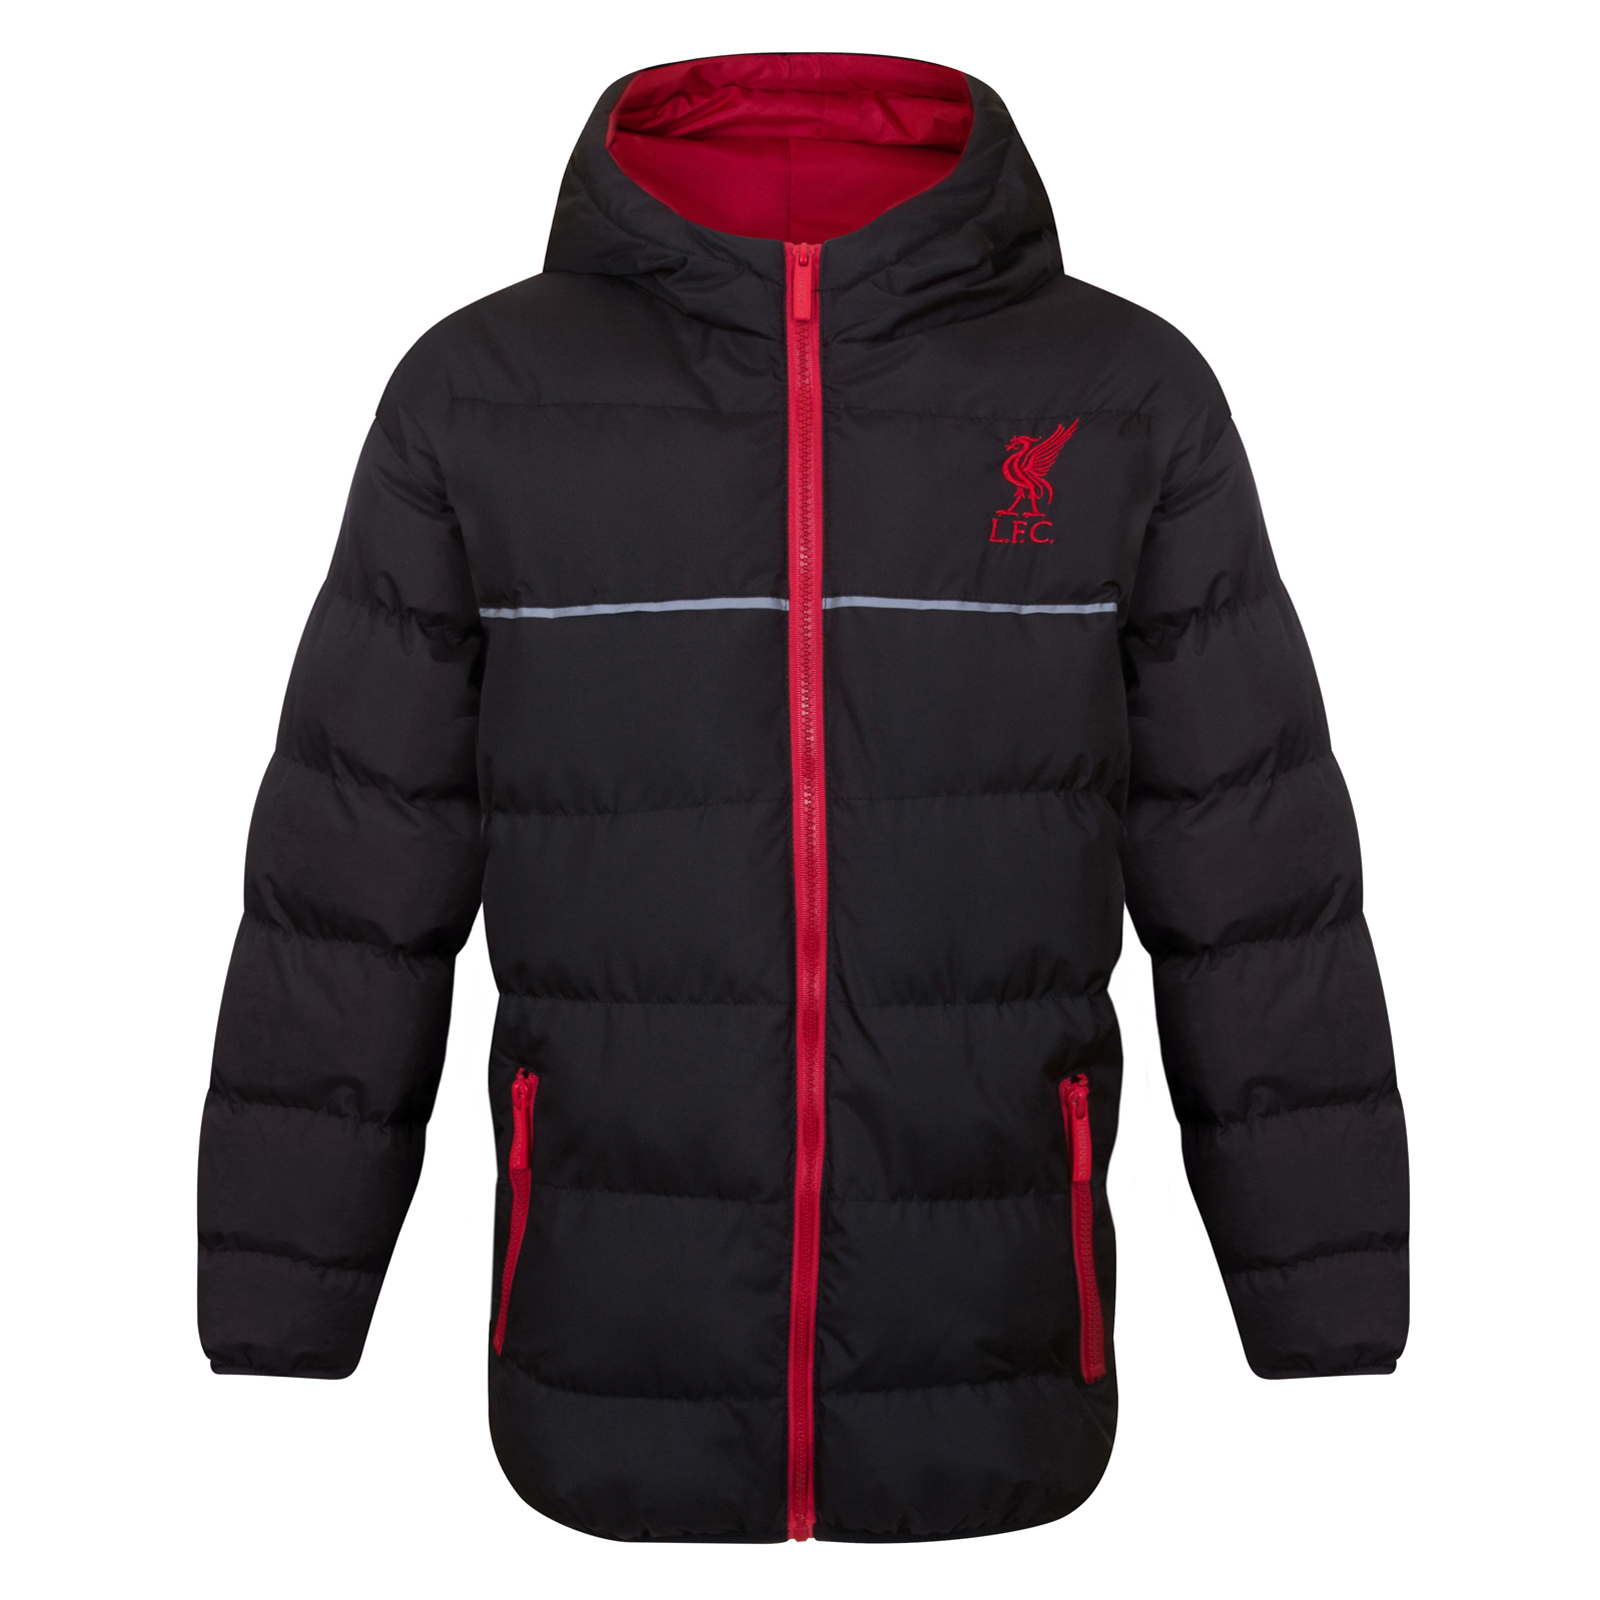 fee8deae46c liverpool grey jacket on sale   OFF40% Discounts